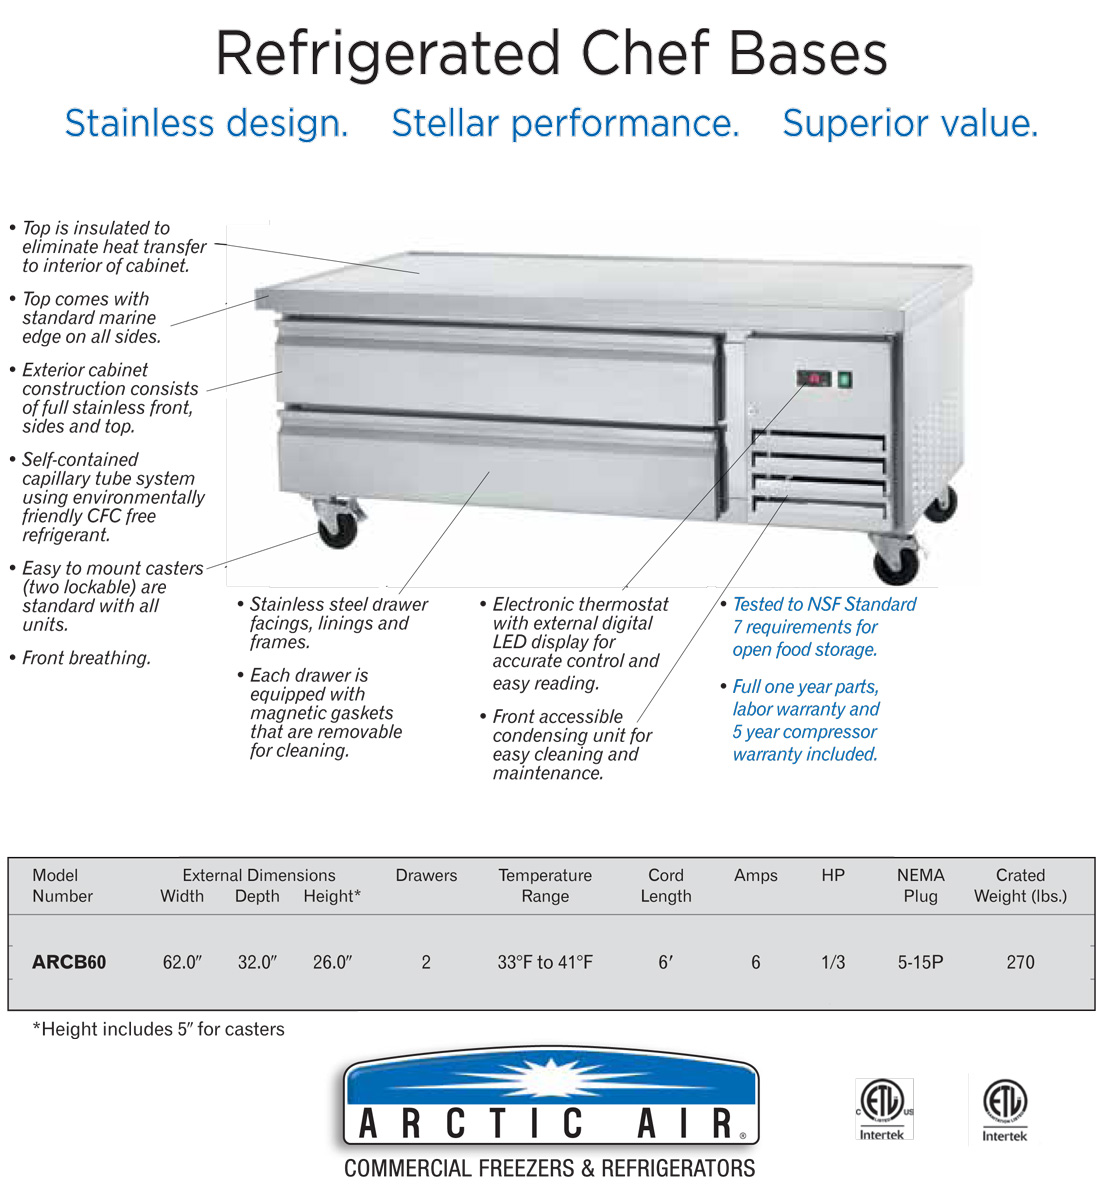 Arctic Air ARCB60 Refrigerated Chef Base Specification Image